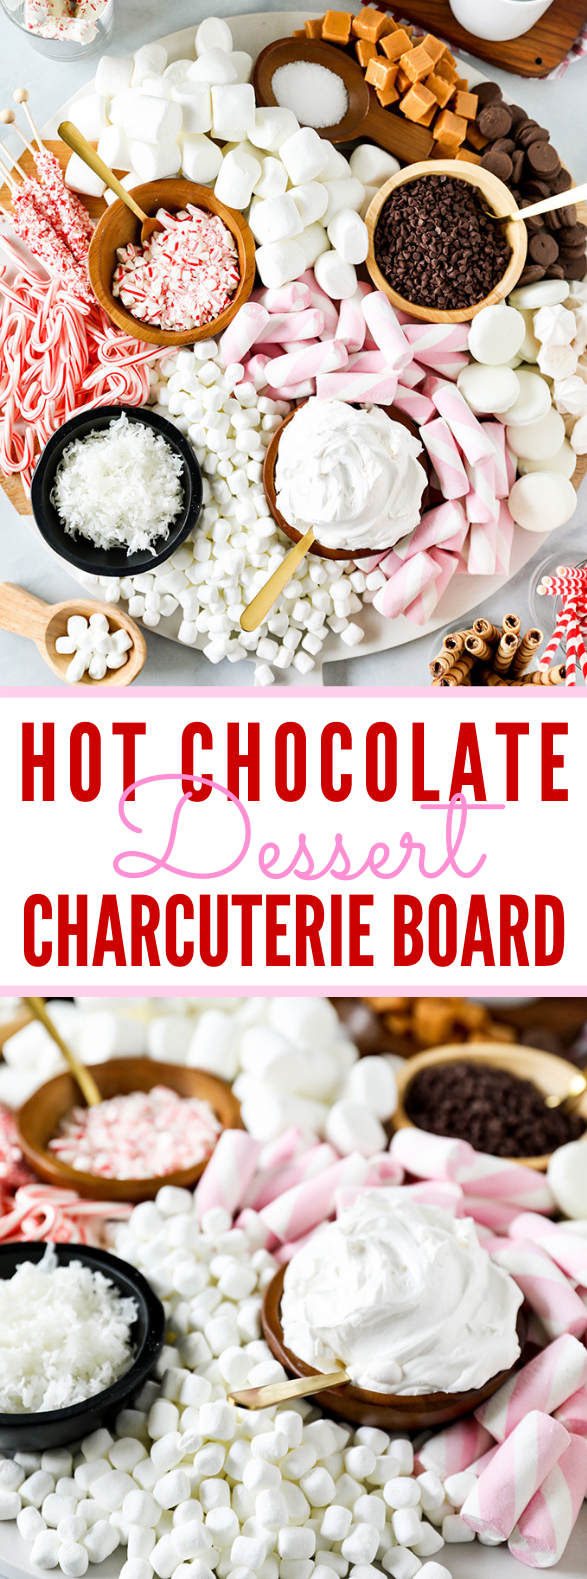 HOT CHOCOLATE DESSERT CHARCUTERIE BOARD #sweets #yummy